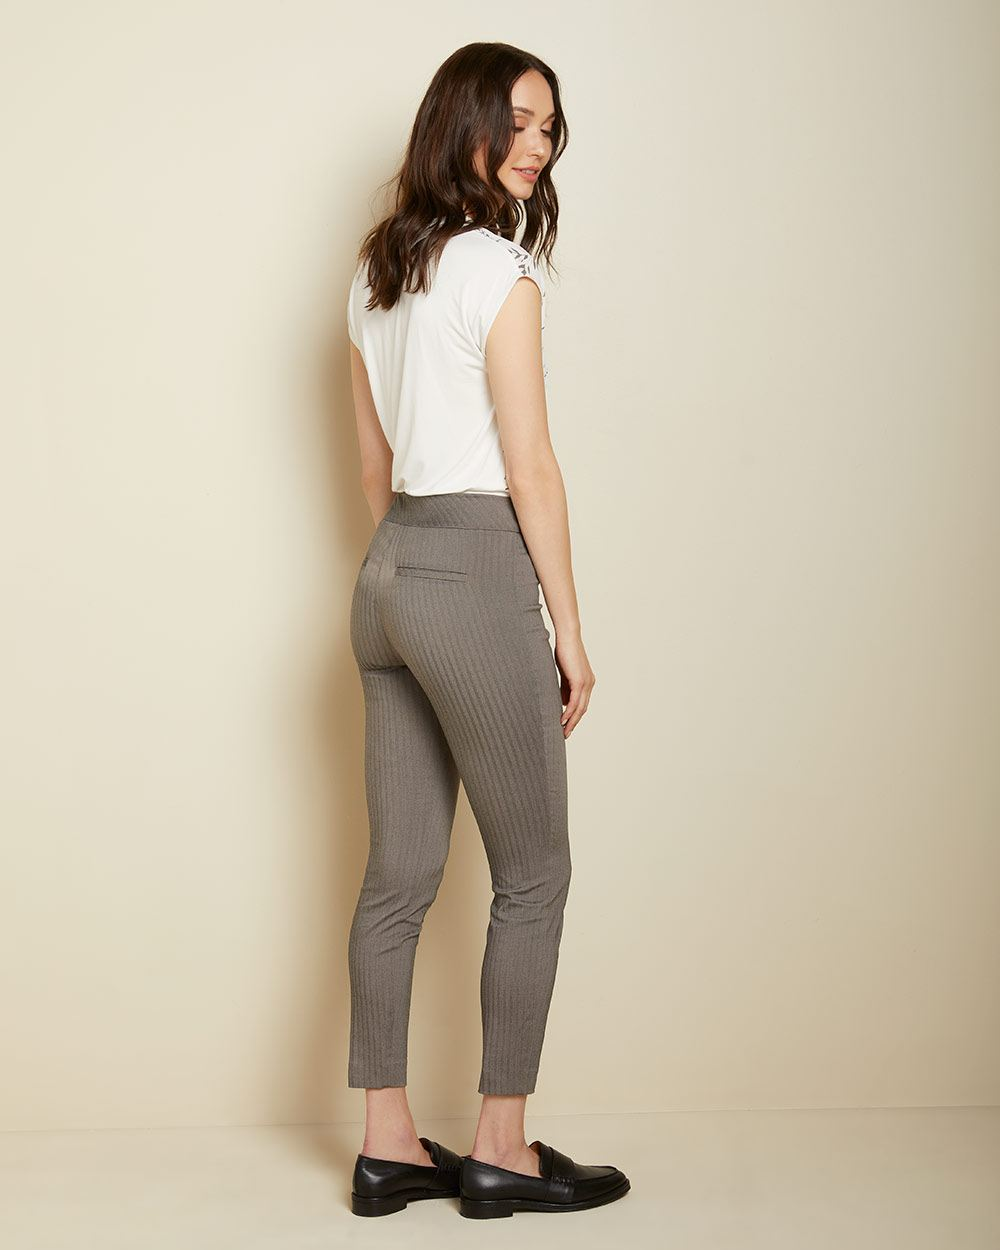 C&G Herringbone City legging pant - 28''